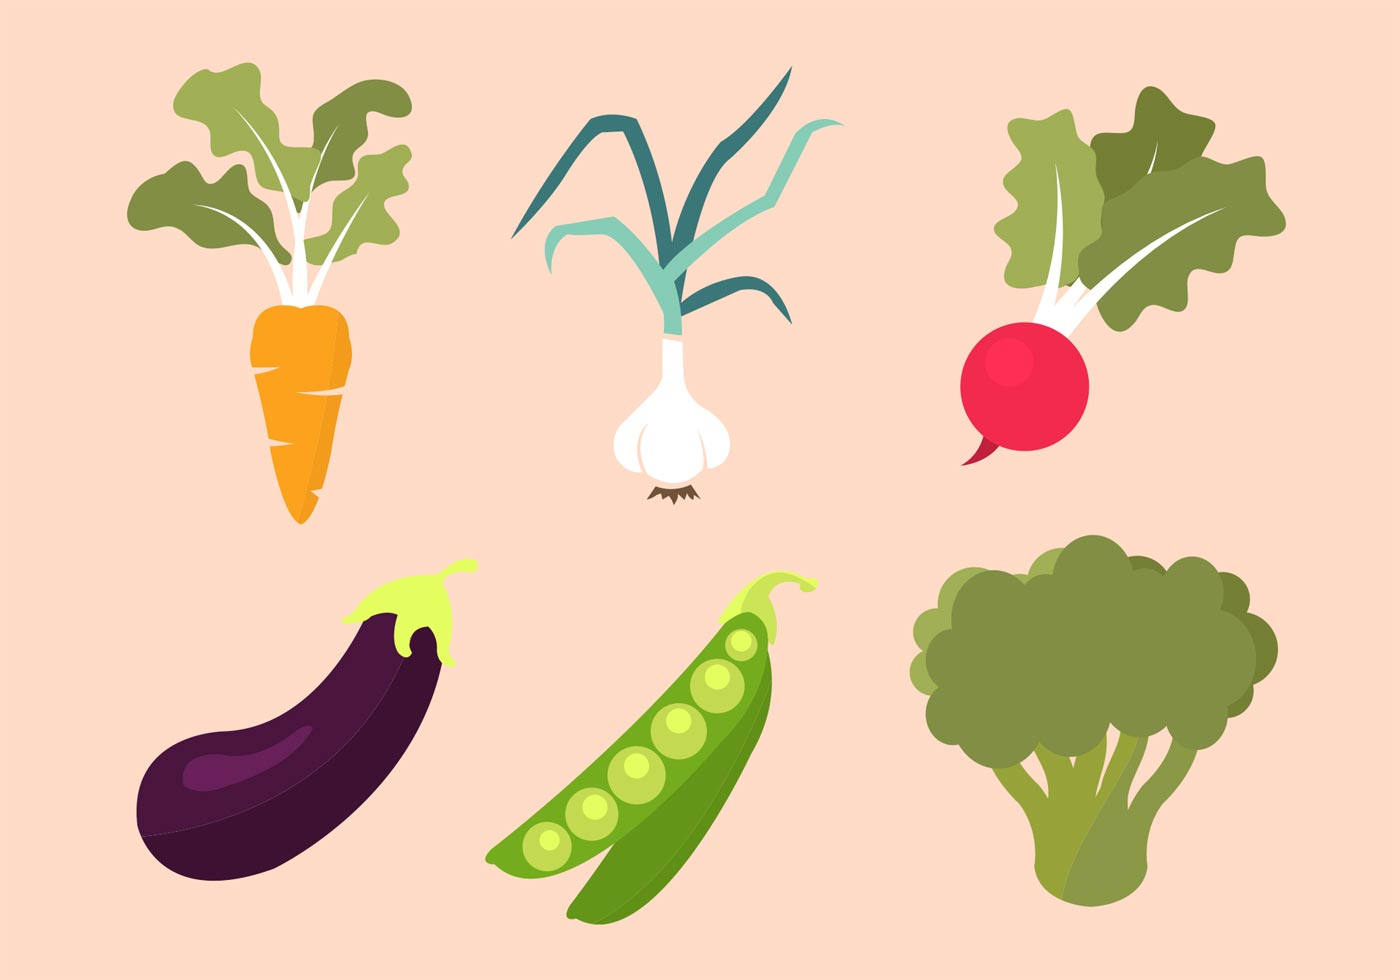 Vegetables Vector Collection - Download Free Vector Art ...